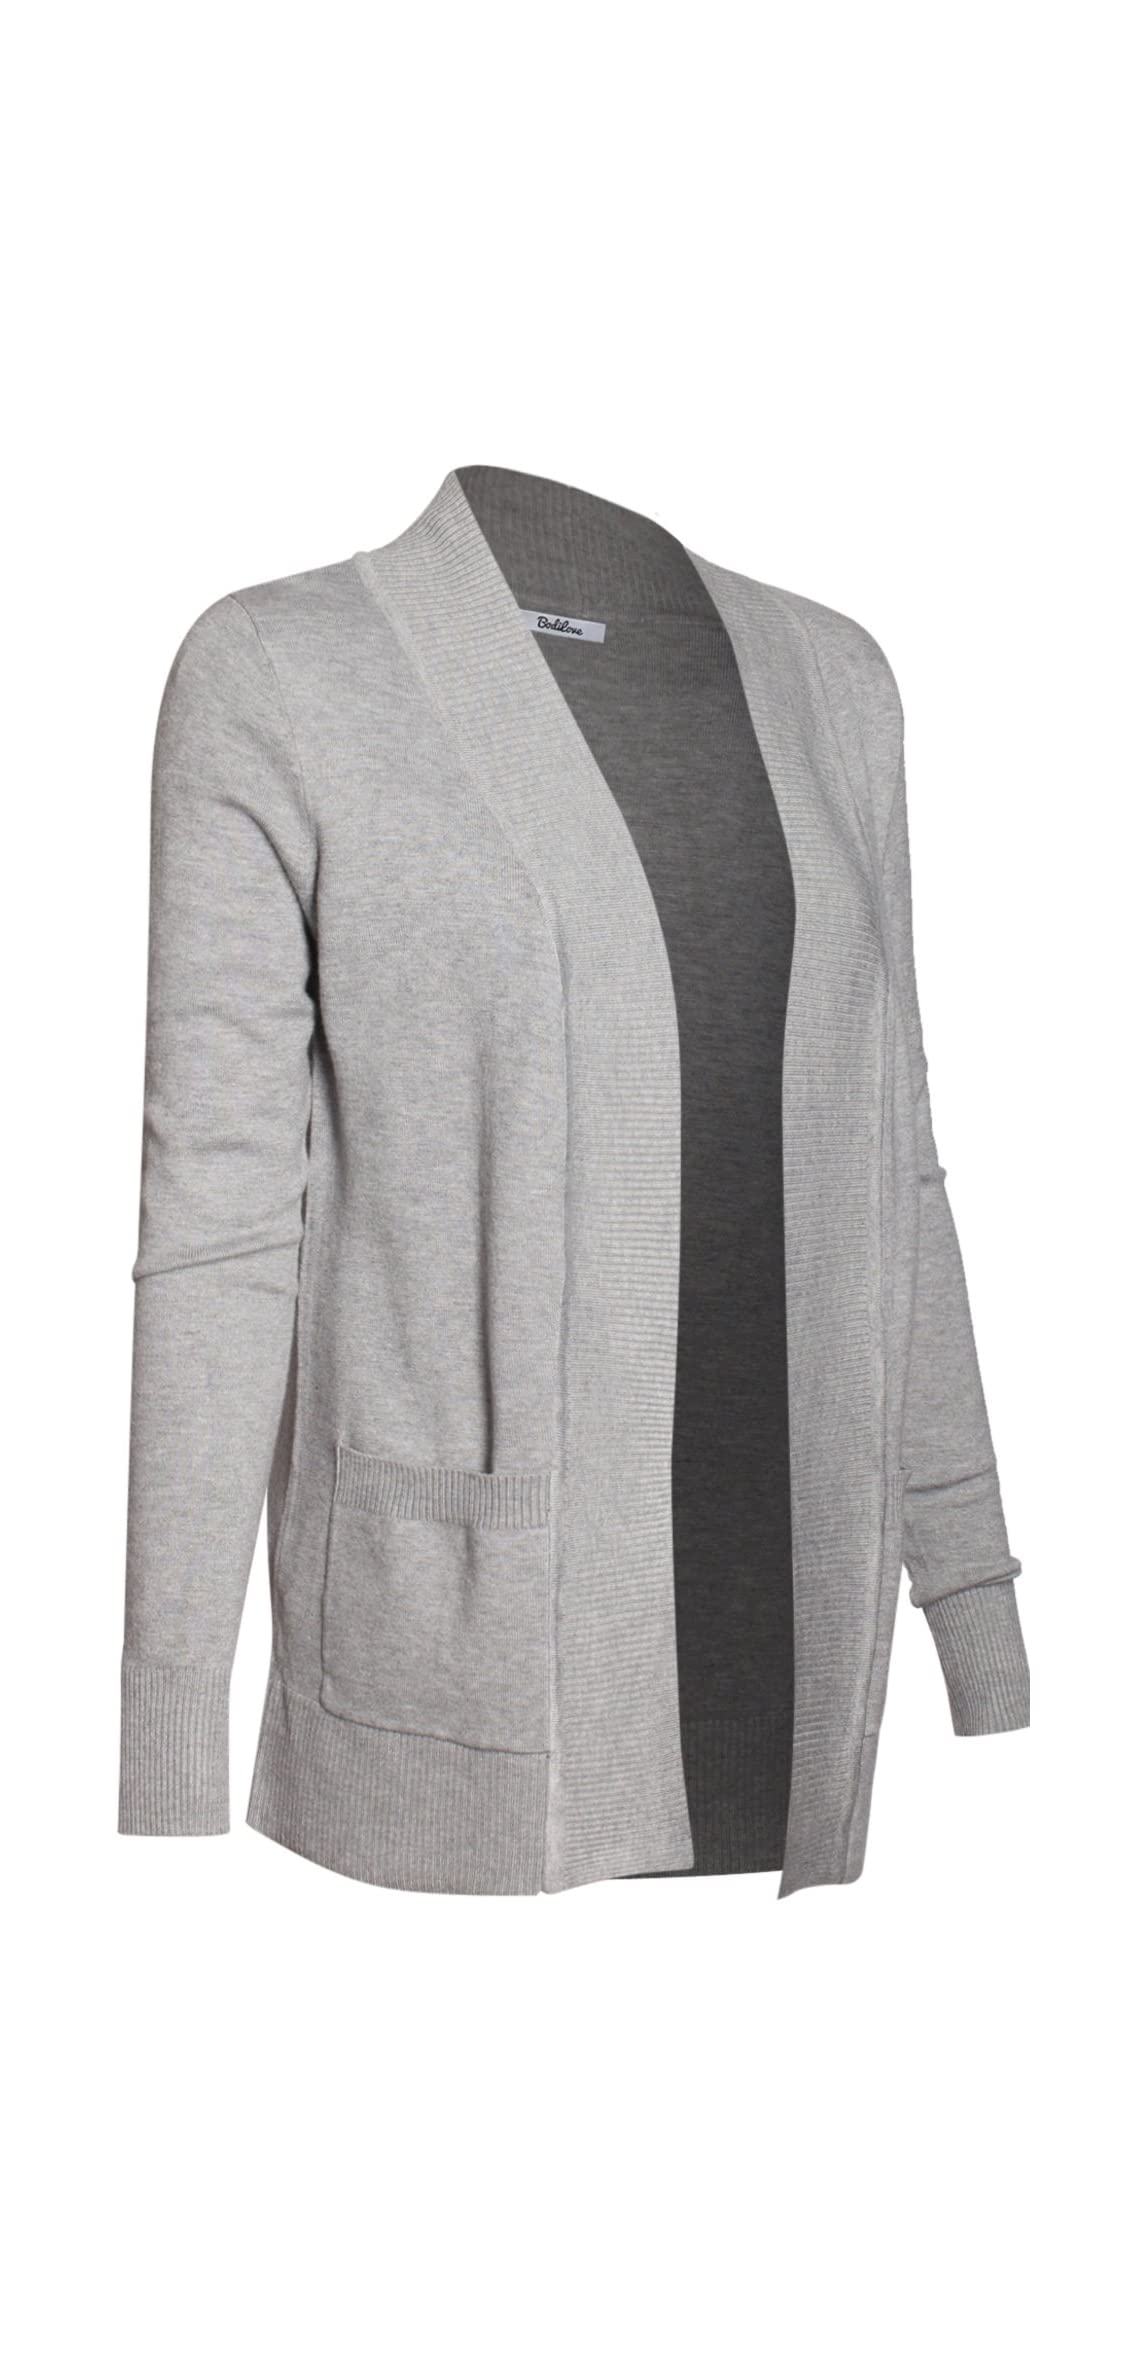 Women's Classic Knit Open Front Long Sleeve Cardigan